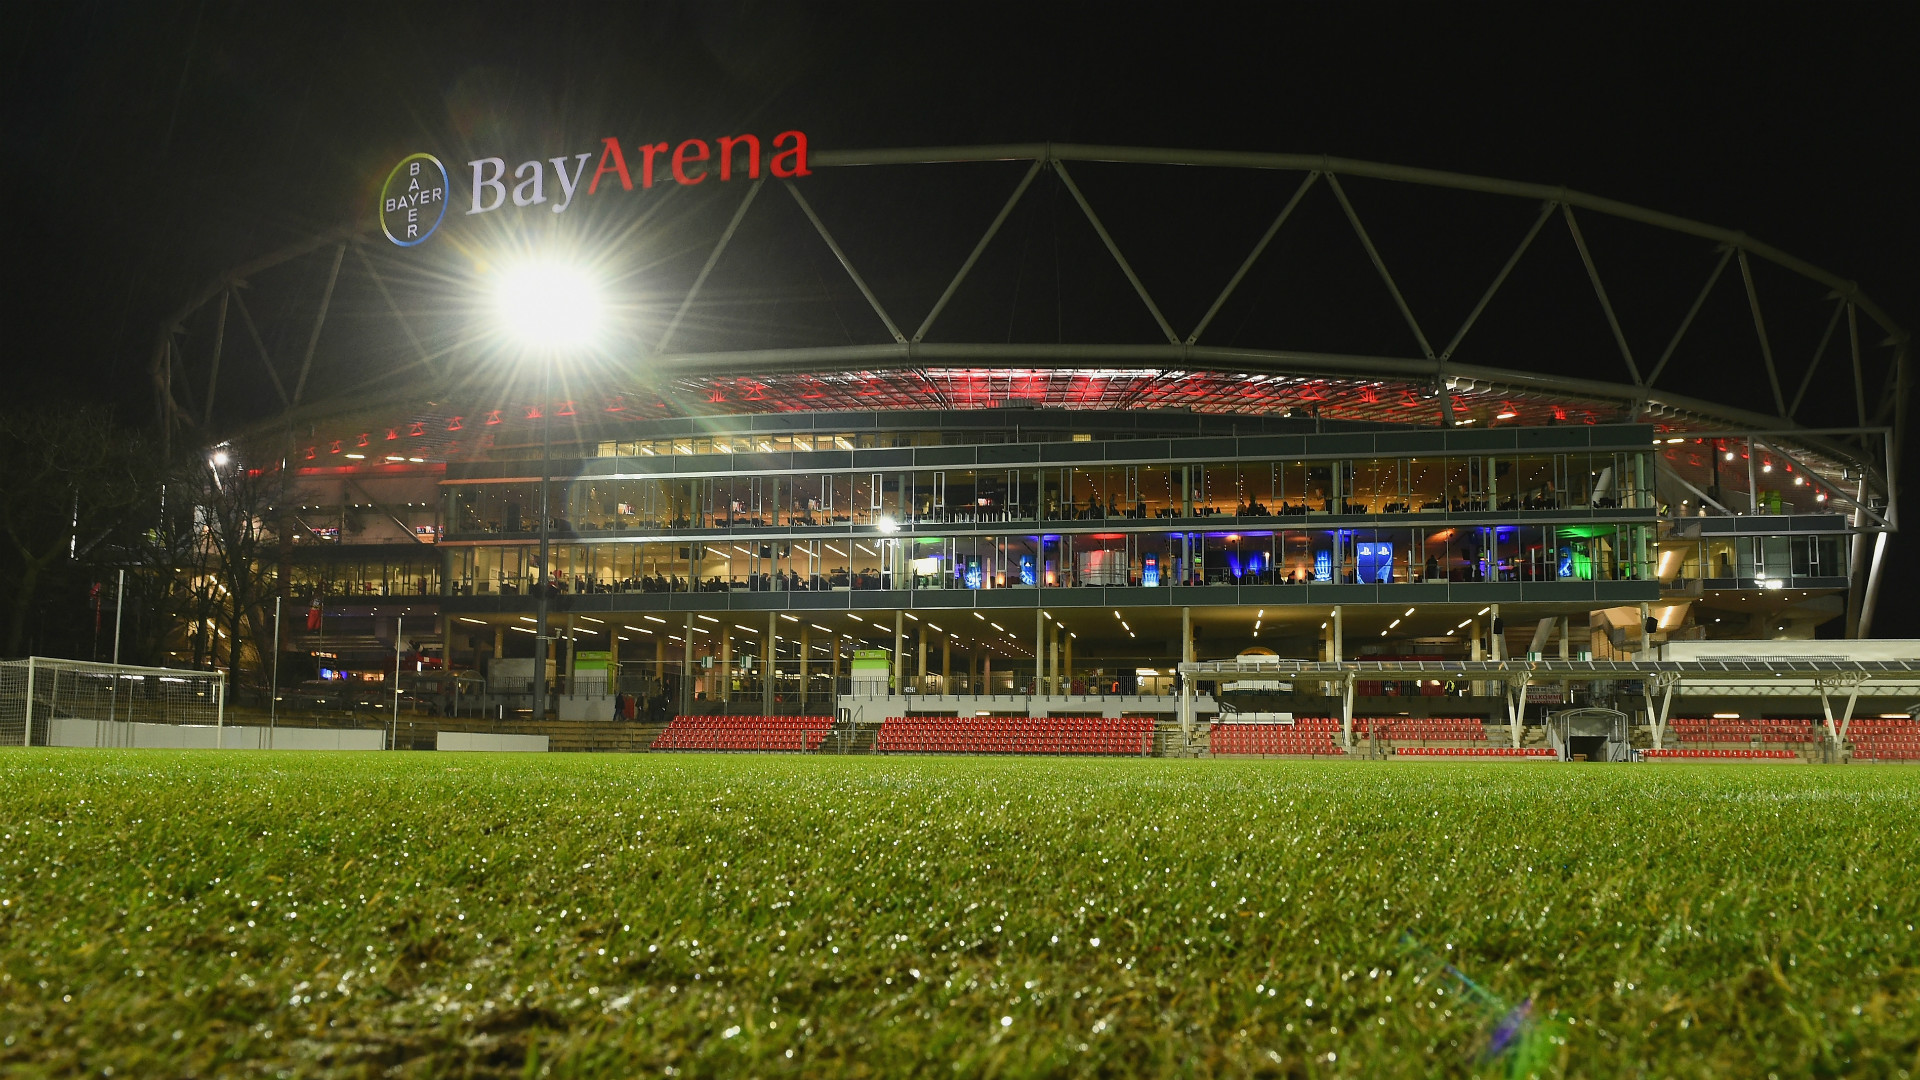 BayArena Bayer Leverkusen Atletico Madrid Champions League 25022015